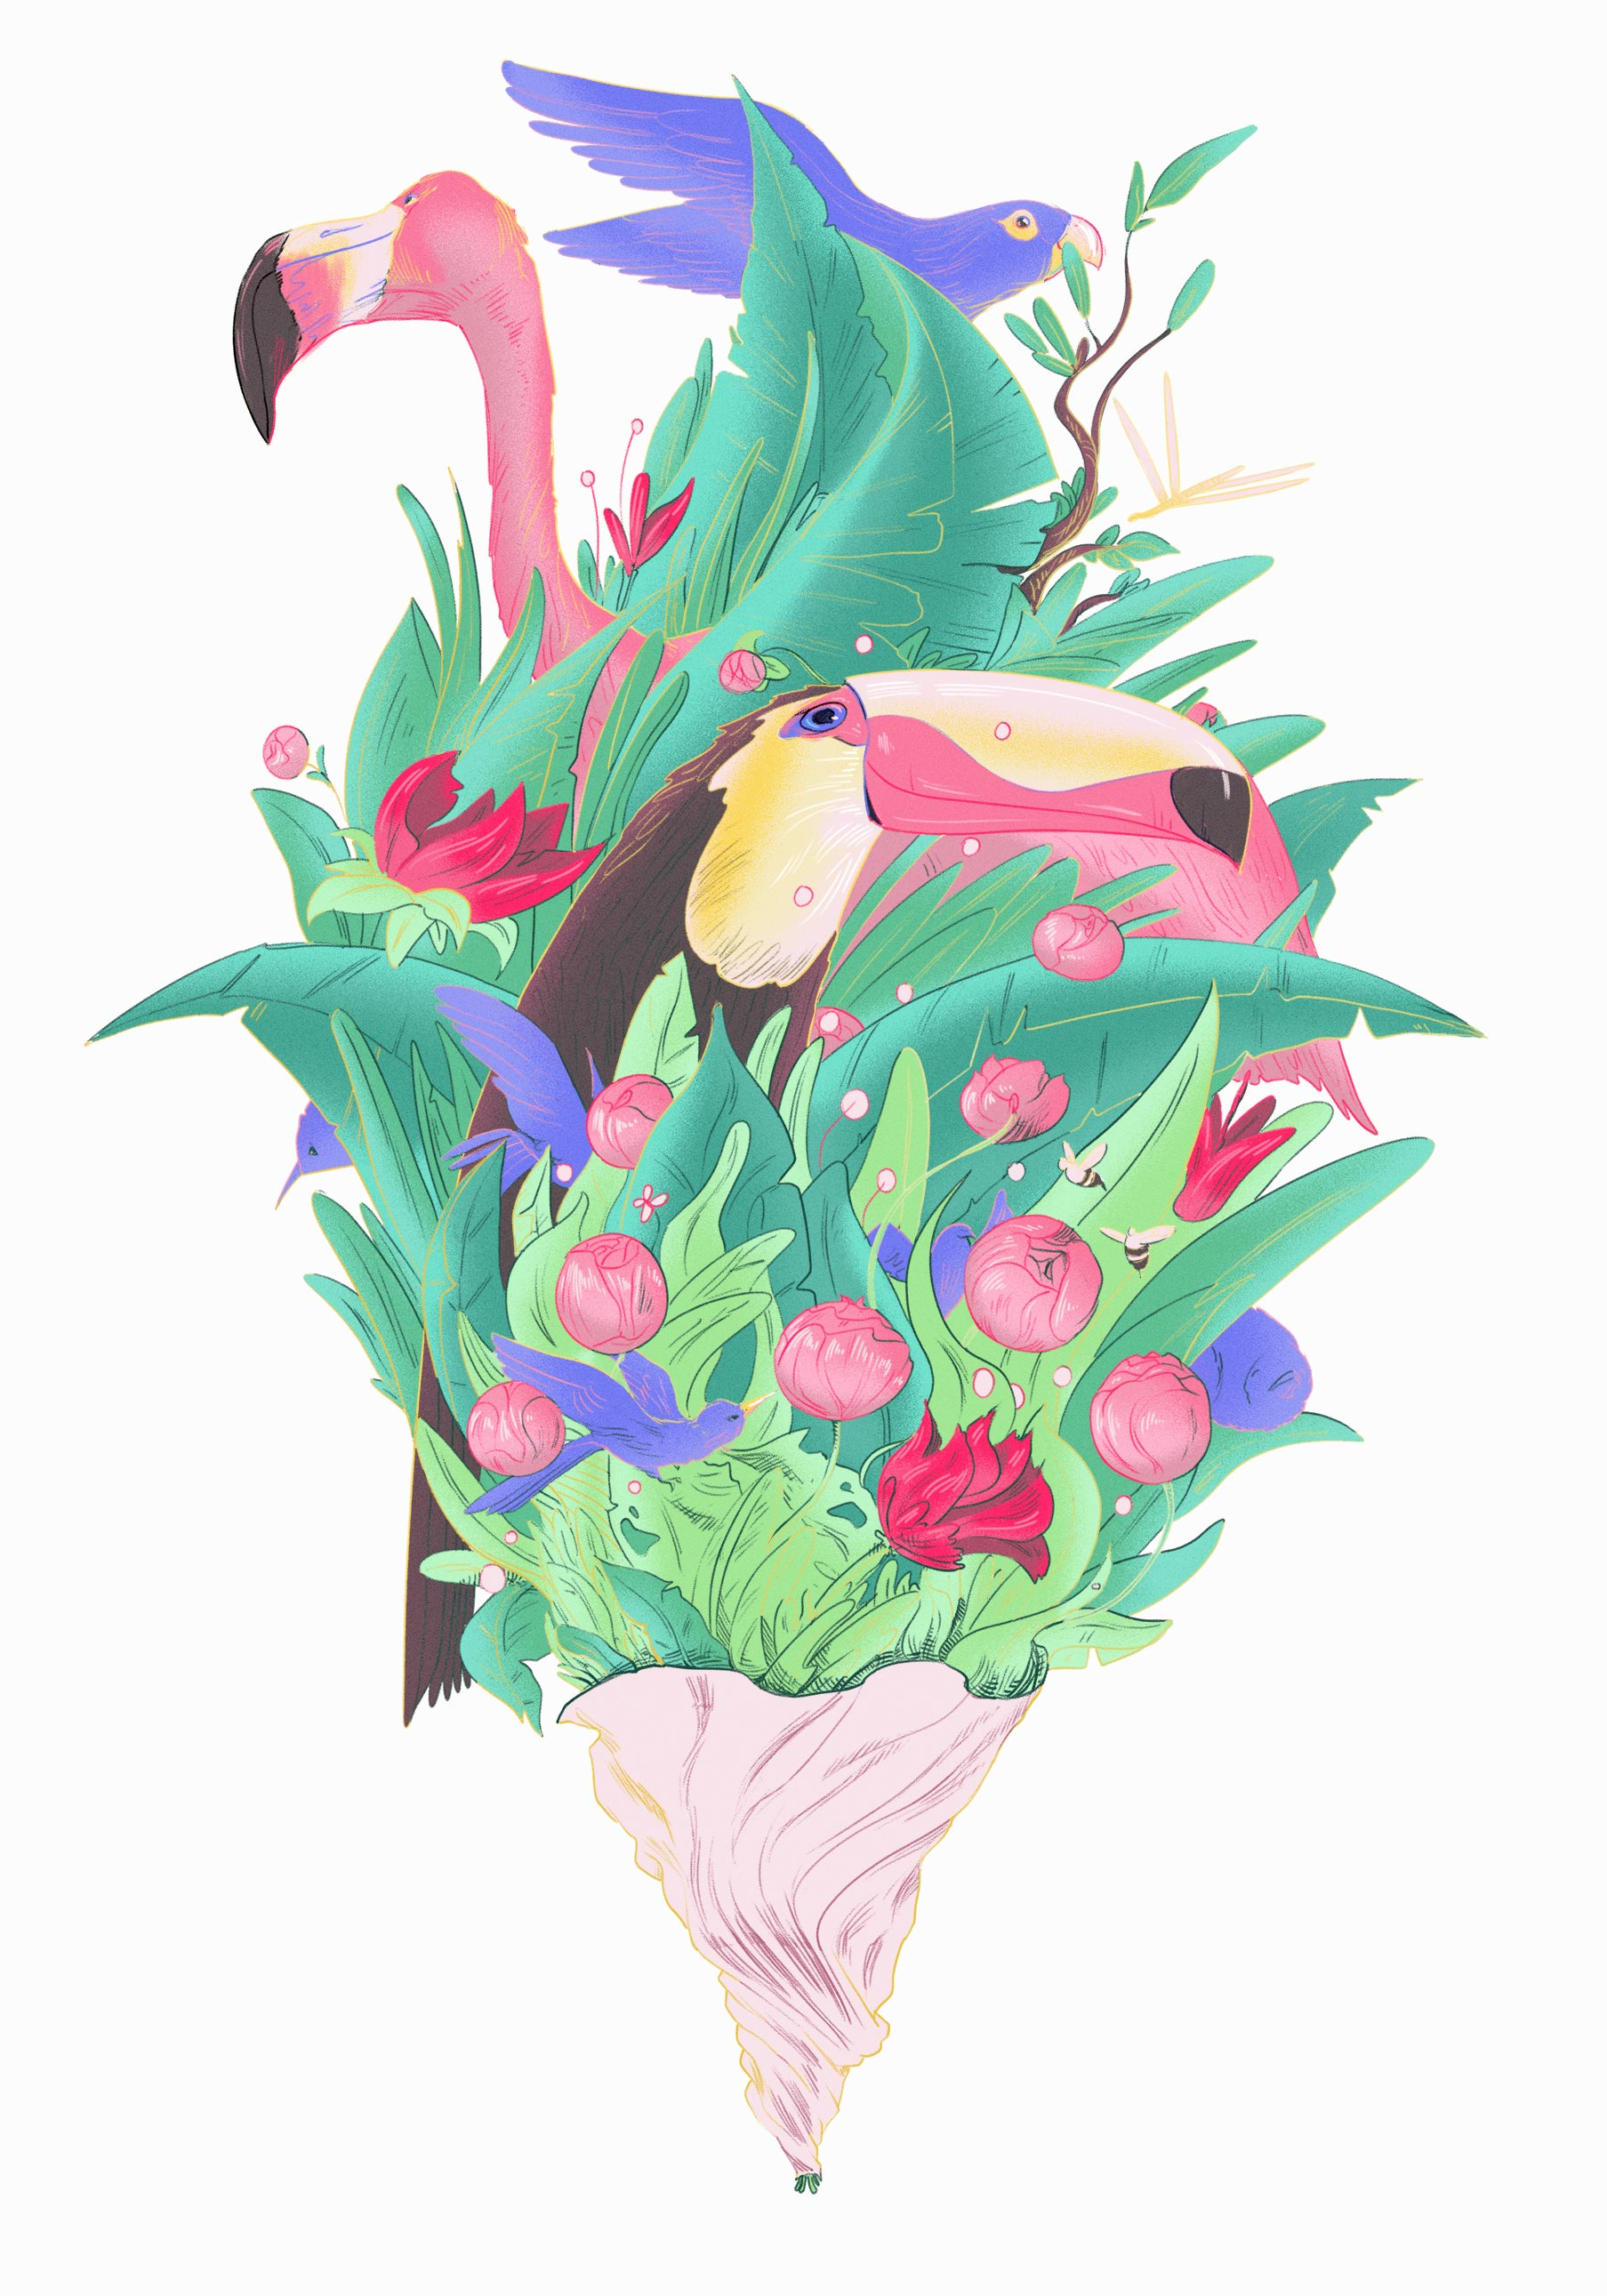 A bouquet of flowers, birds and insects.